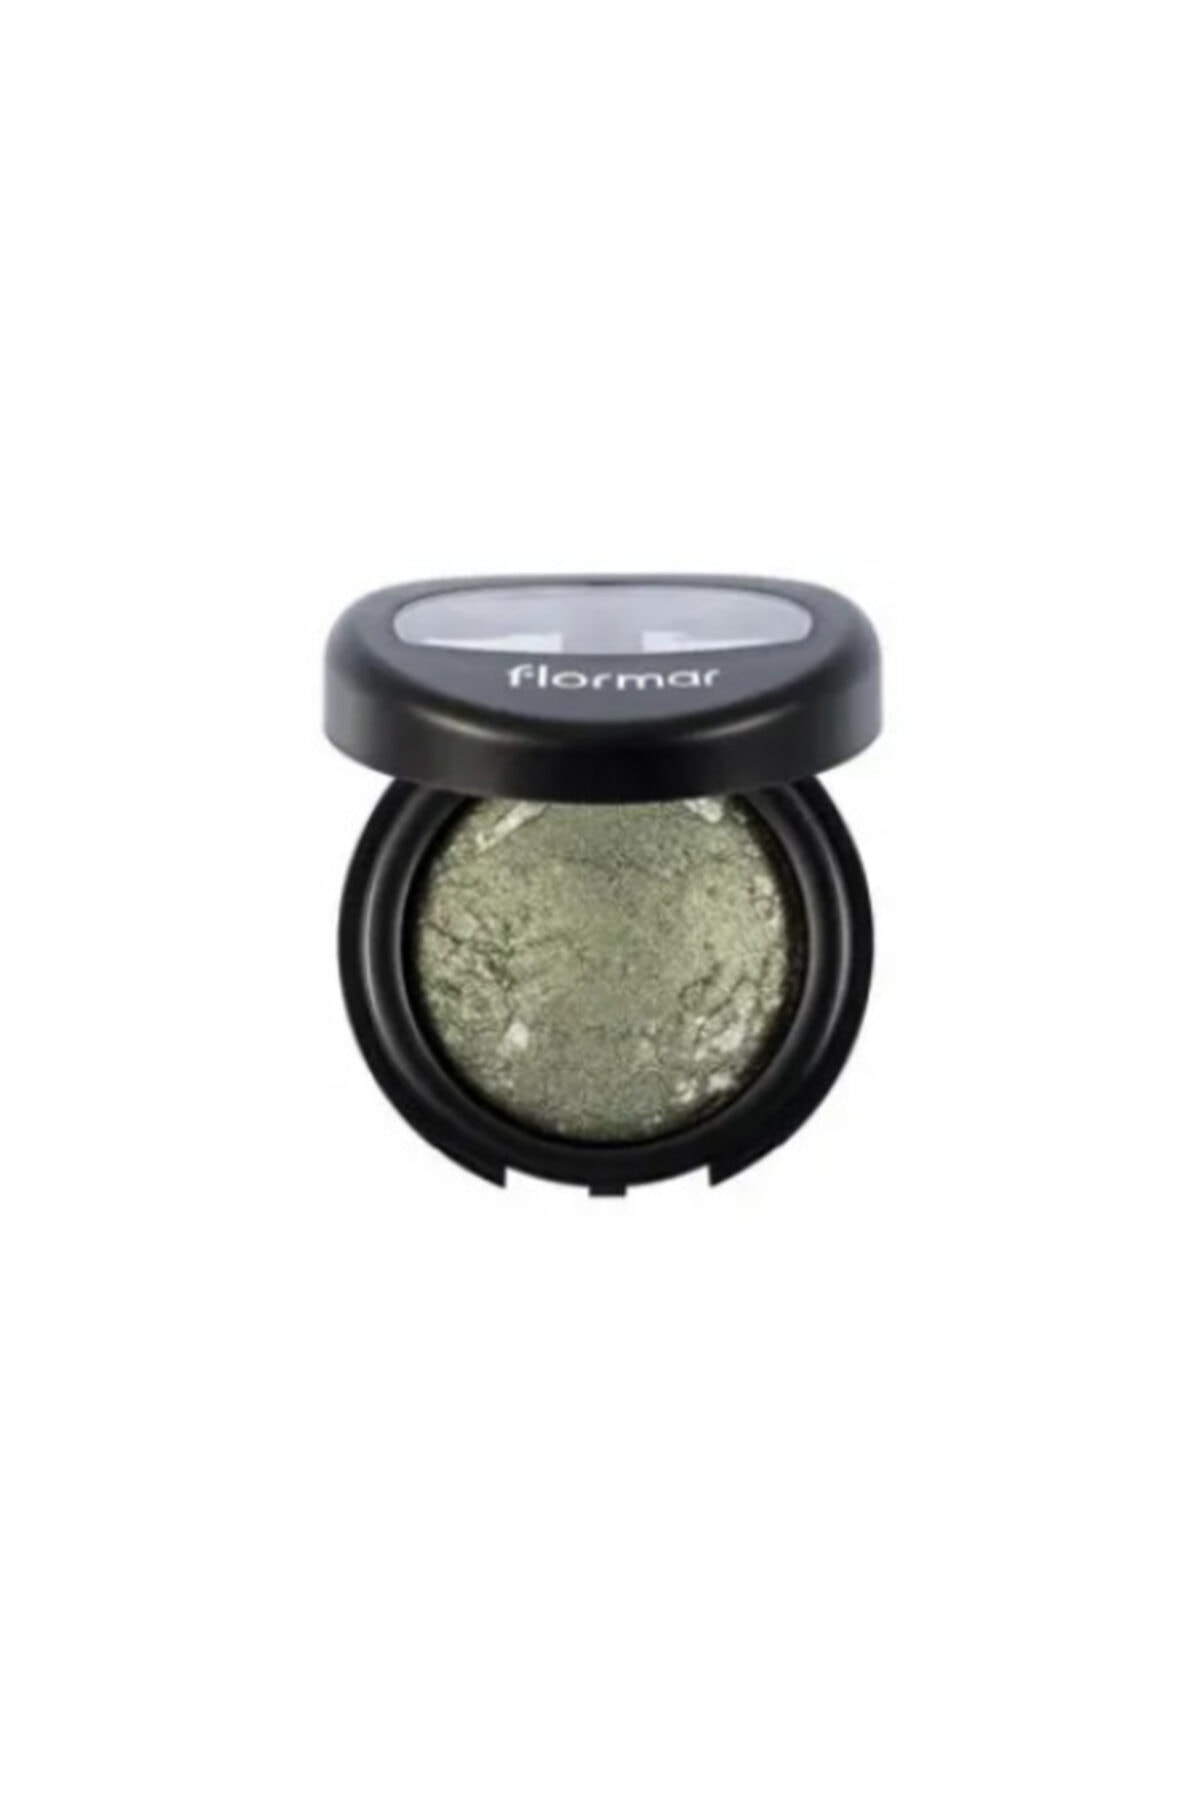 Flormar - Dıamonds Baked Eye Shadow D07 Olıve Glam (göz Farı) 1